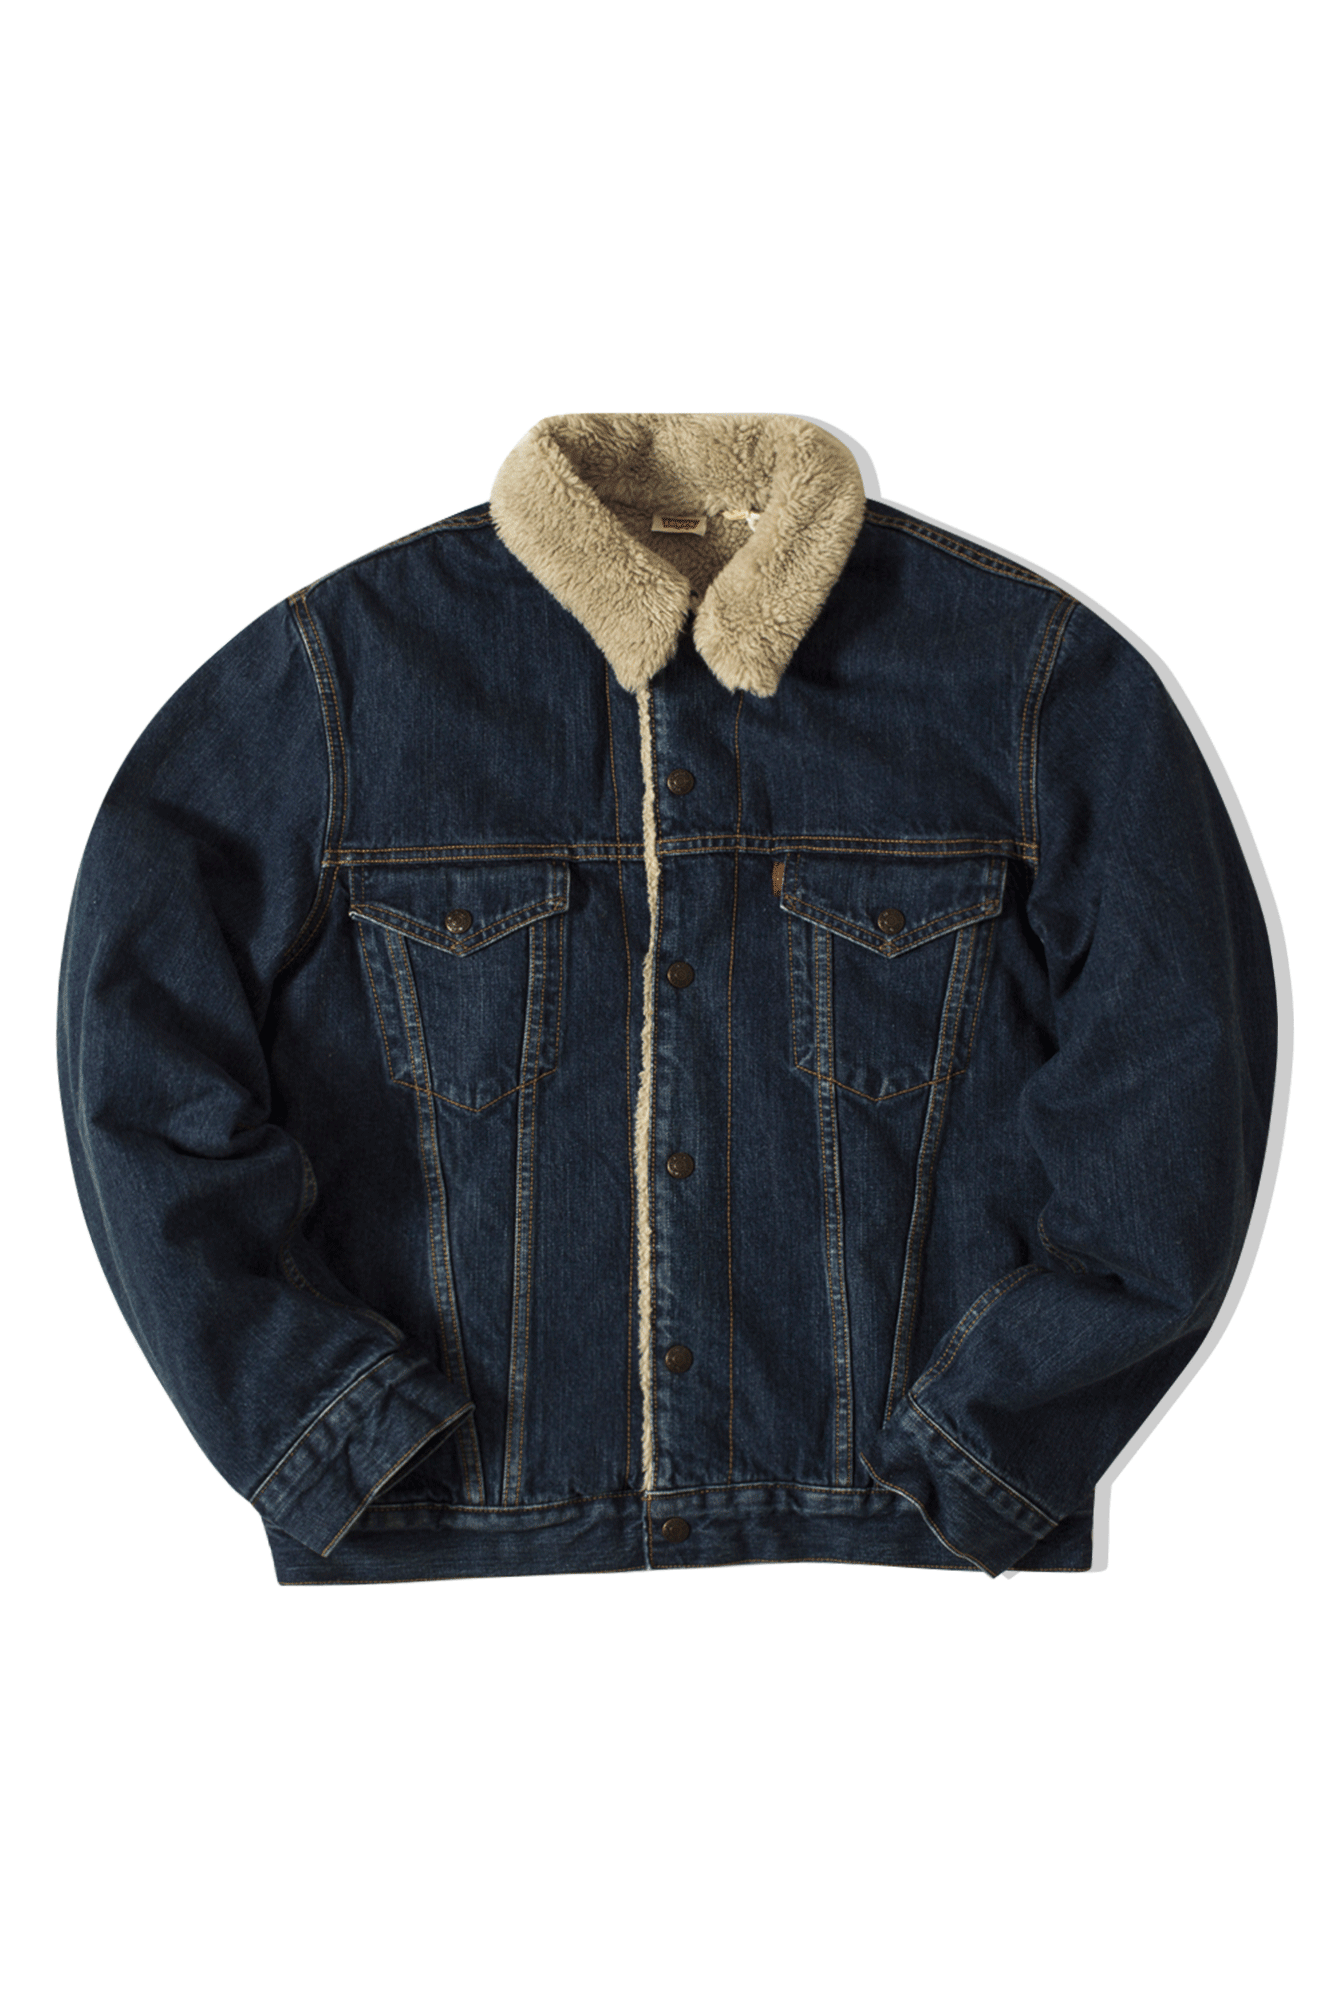 Levi's Coats & Jackets 1967 Type III Sherpa Wise Dub Blue 7258700060#000#C0007#M - One Block Down